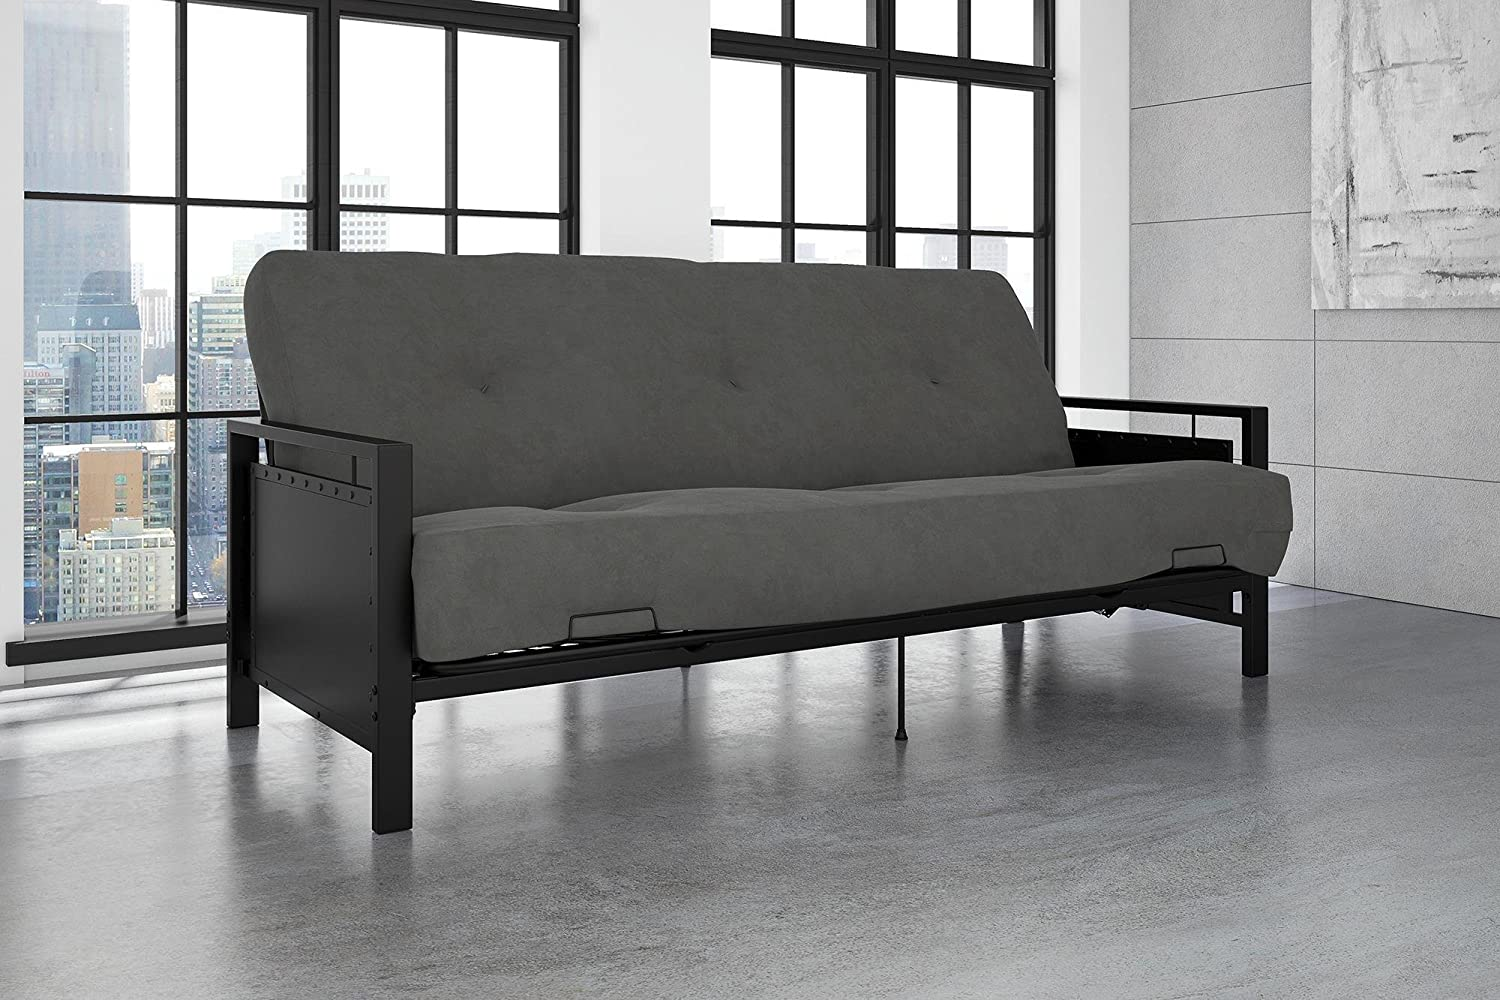 DHP Henley Metal Arm Futon Frame, Industrial Loft Design, Converts to Sleeper, Black Sturdy Metal DHPA1 2185059